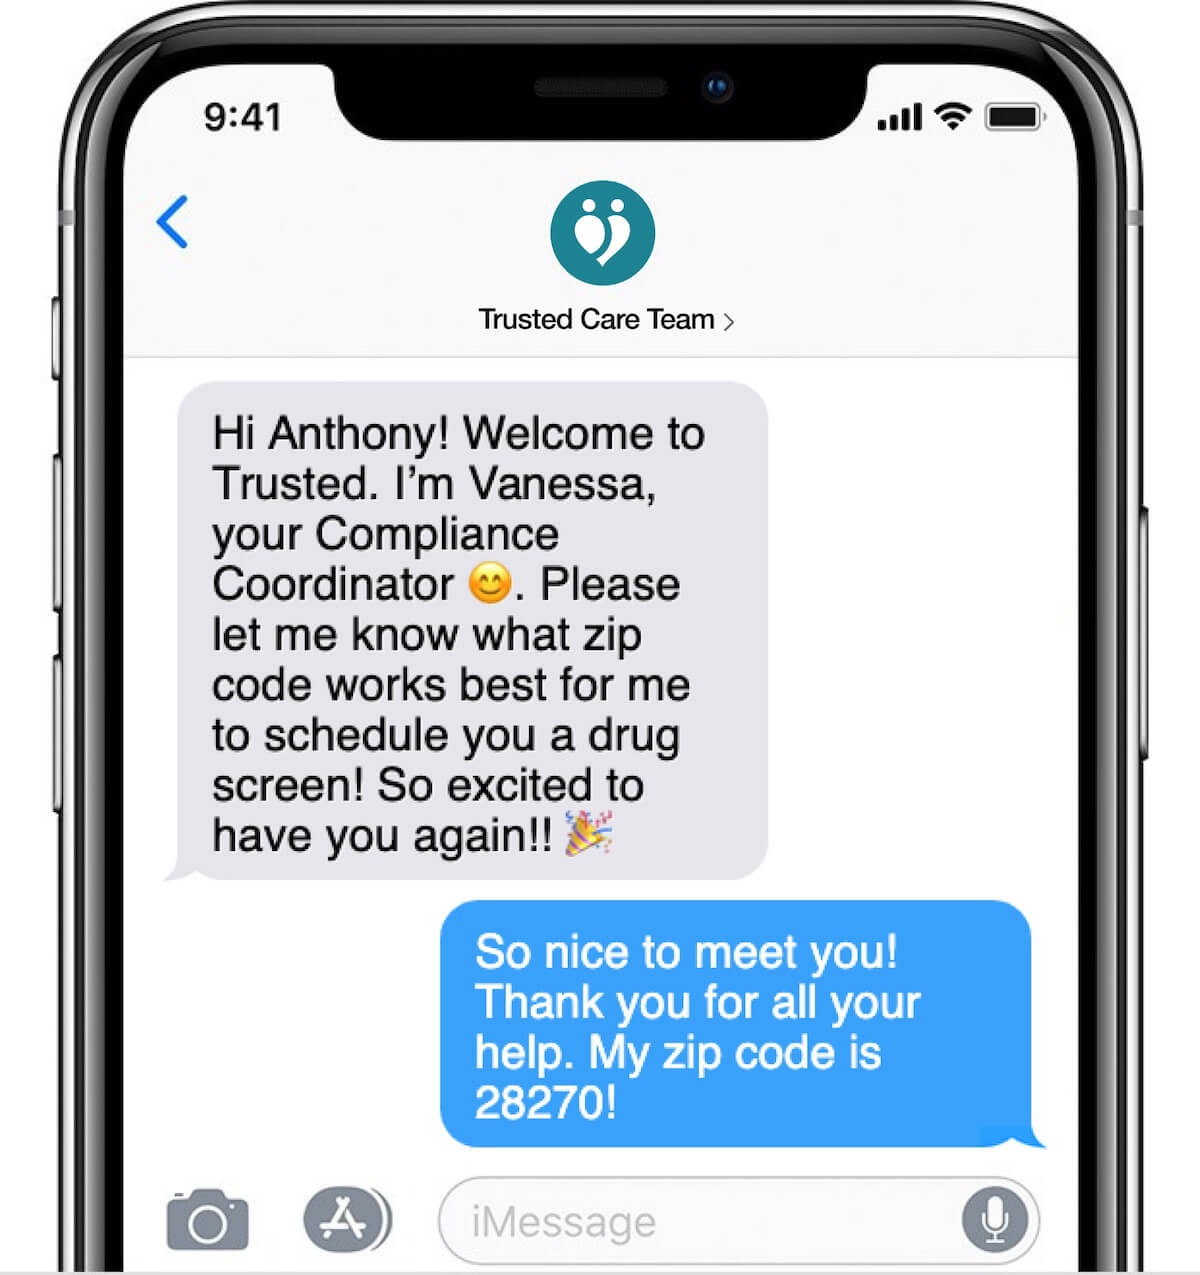 screenshot of iphone text conversation between trusted care team and working nurse trusted health care team communication